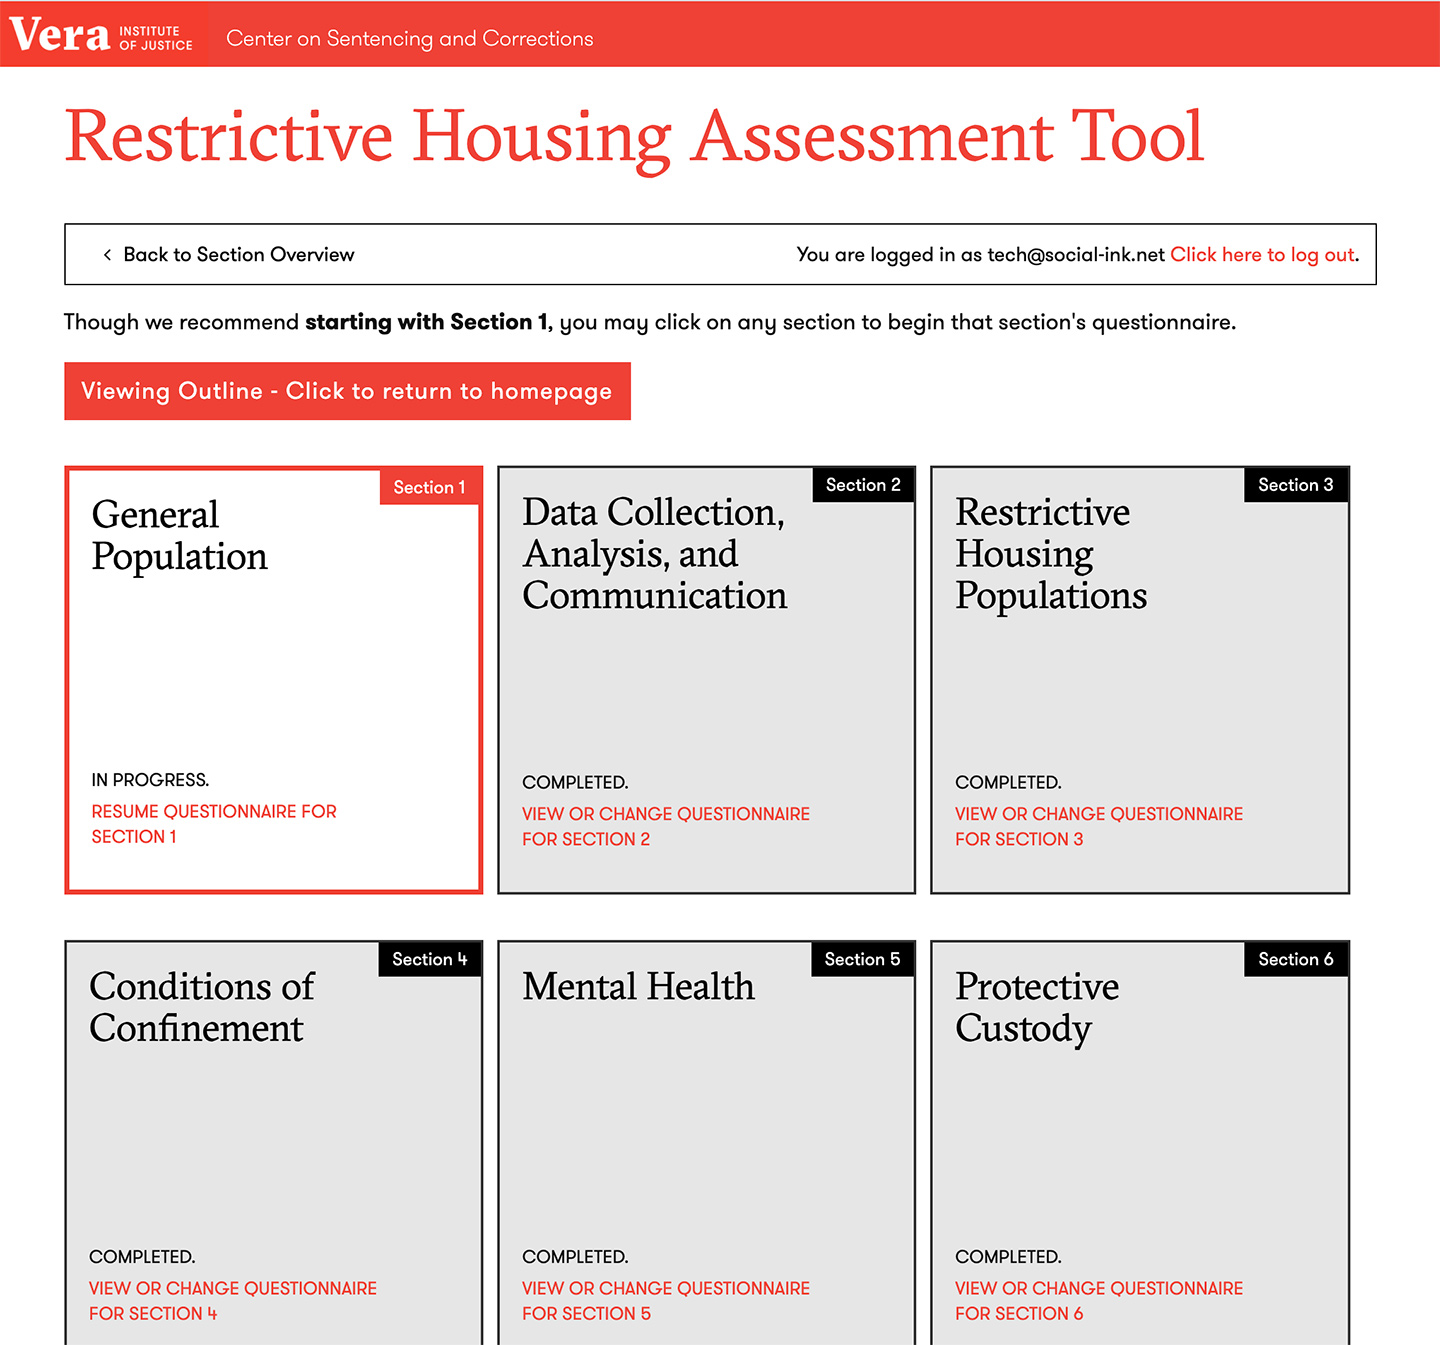 Restrictive Housing Assessment Tool from the Vera Institute of Justice: Restrictive Housing Assessment Tool - Overview Grid